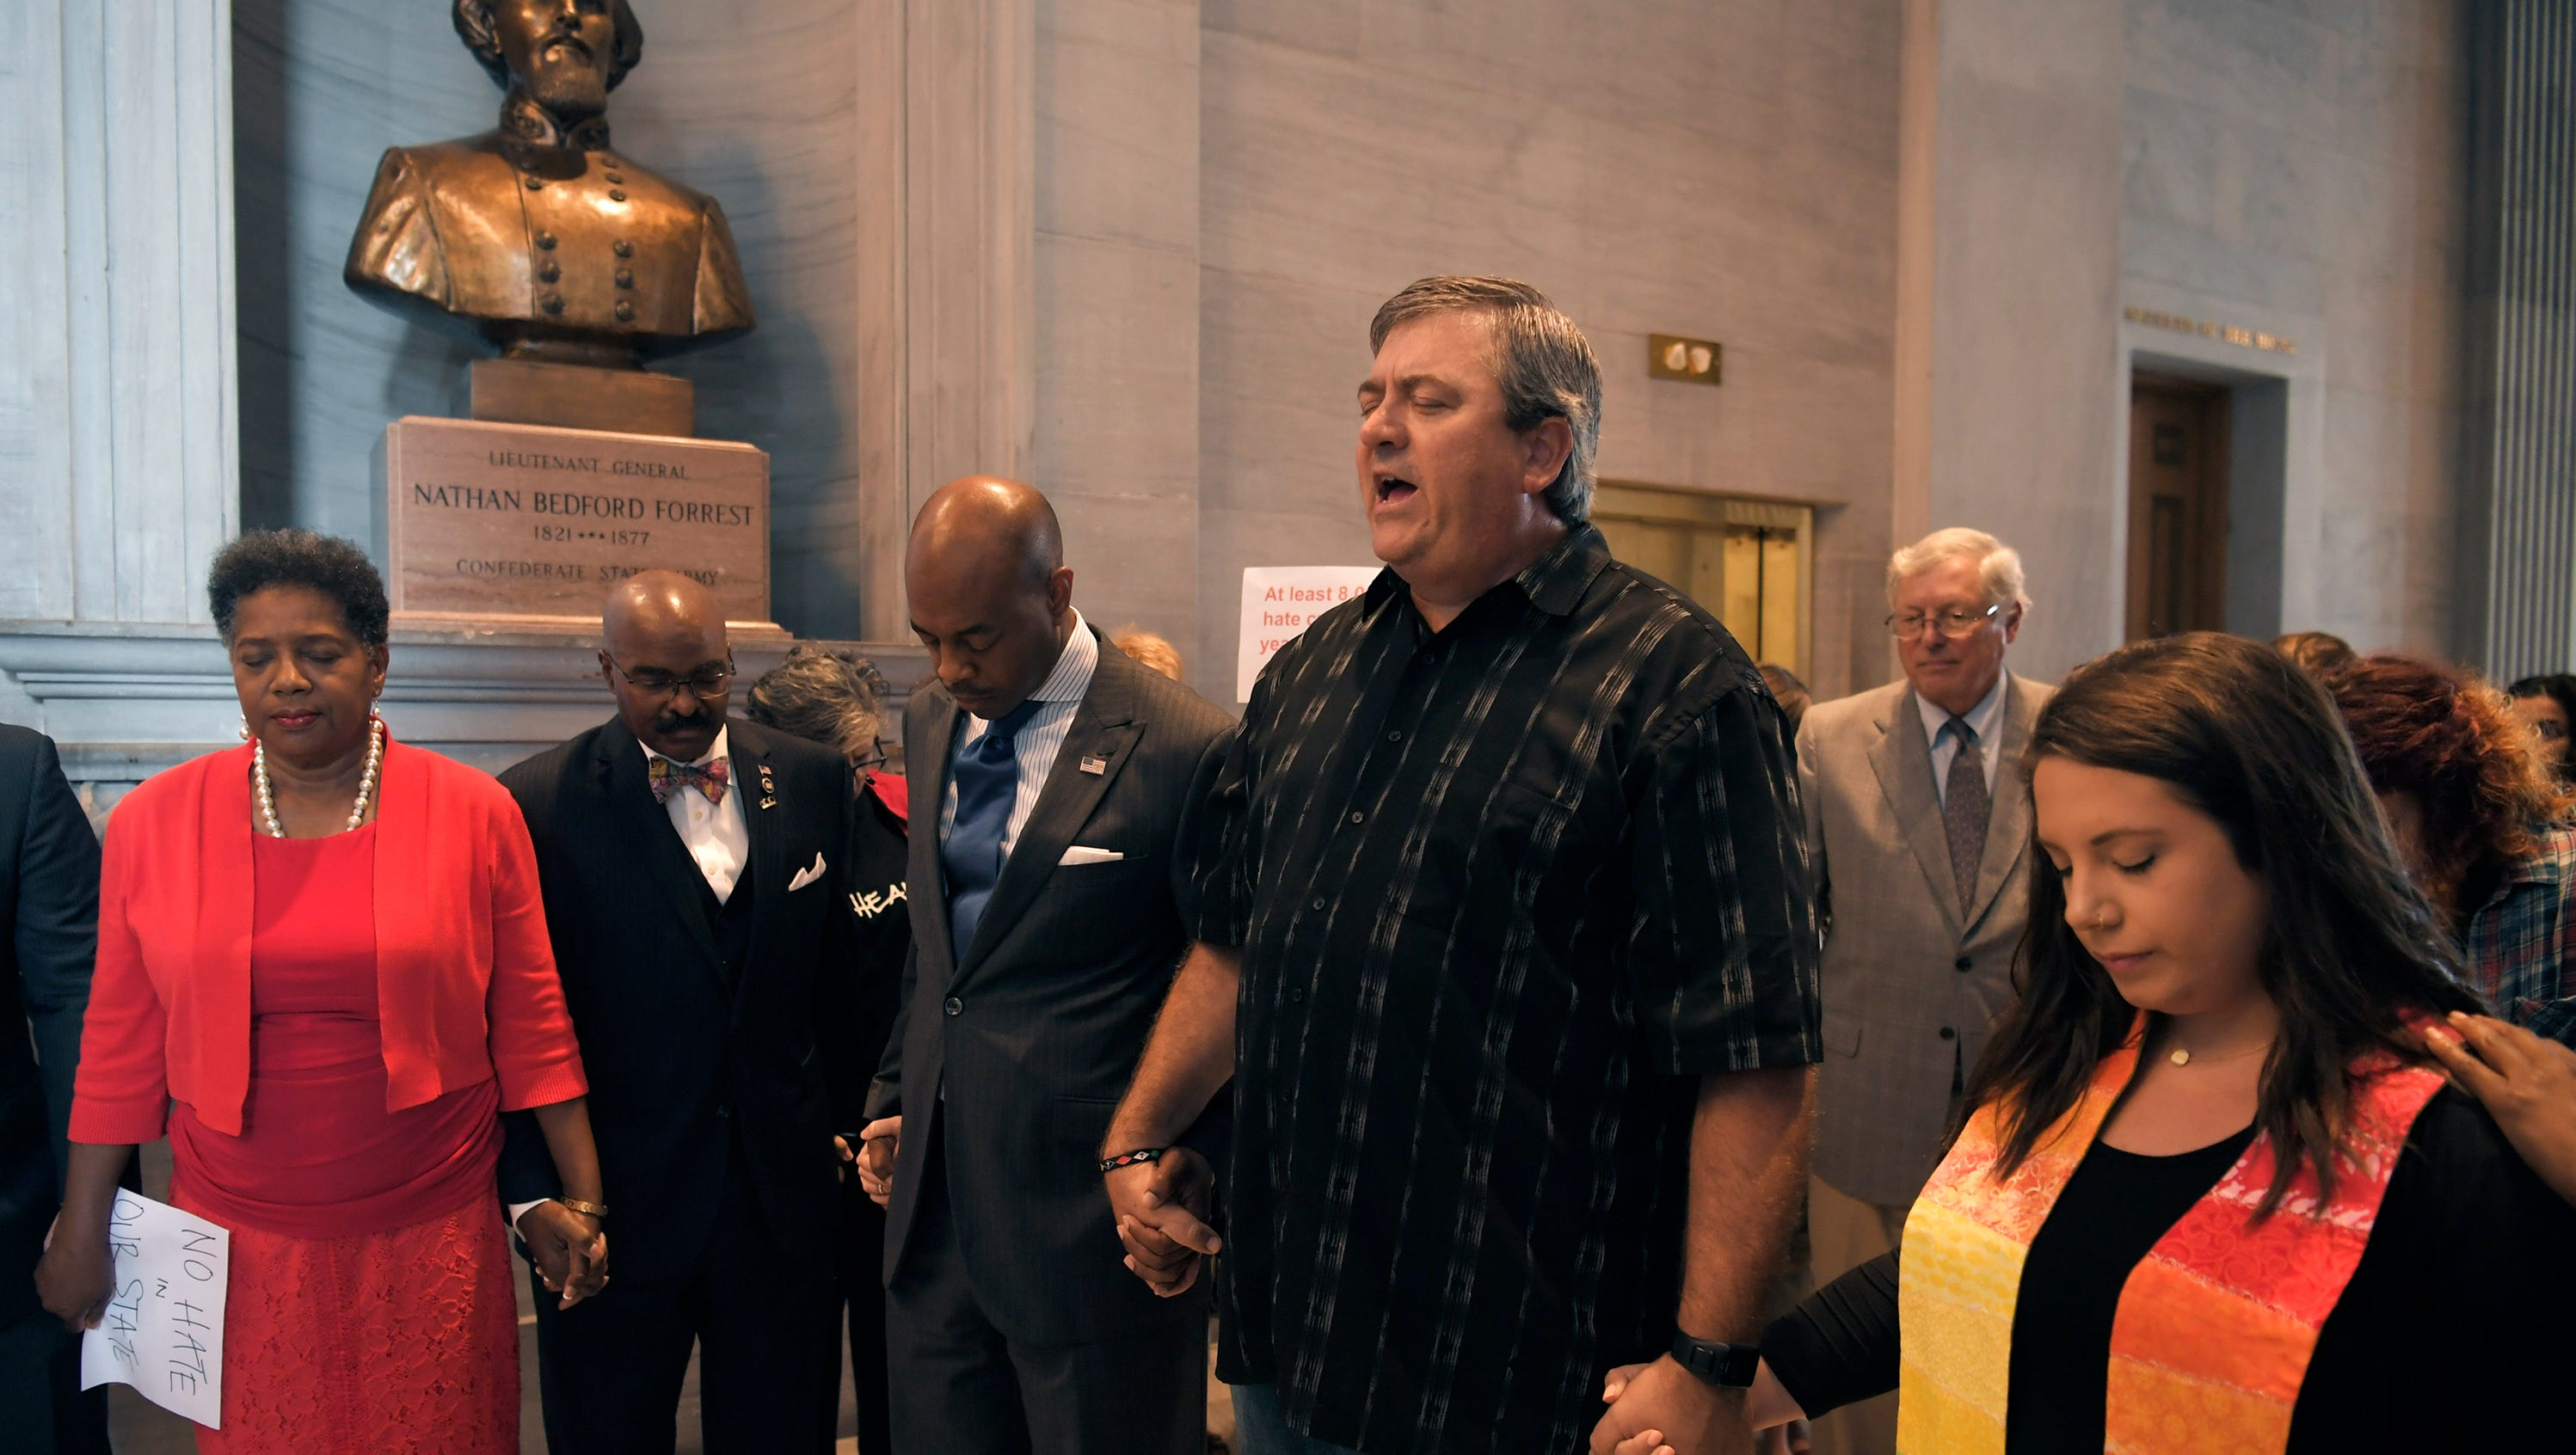 Local clergy, lawmakers and activists pray in front of bust of Nathan Bedford Forrest at the Tennessee Capitol on Monday, August 14, 2017. About 75 activists condemning white supremacy gathered in opposition to the bust of Nathan Bedford Forrest housed there.